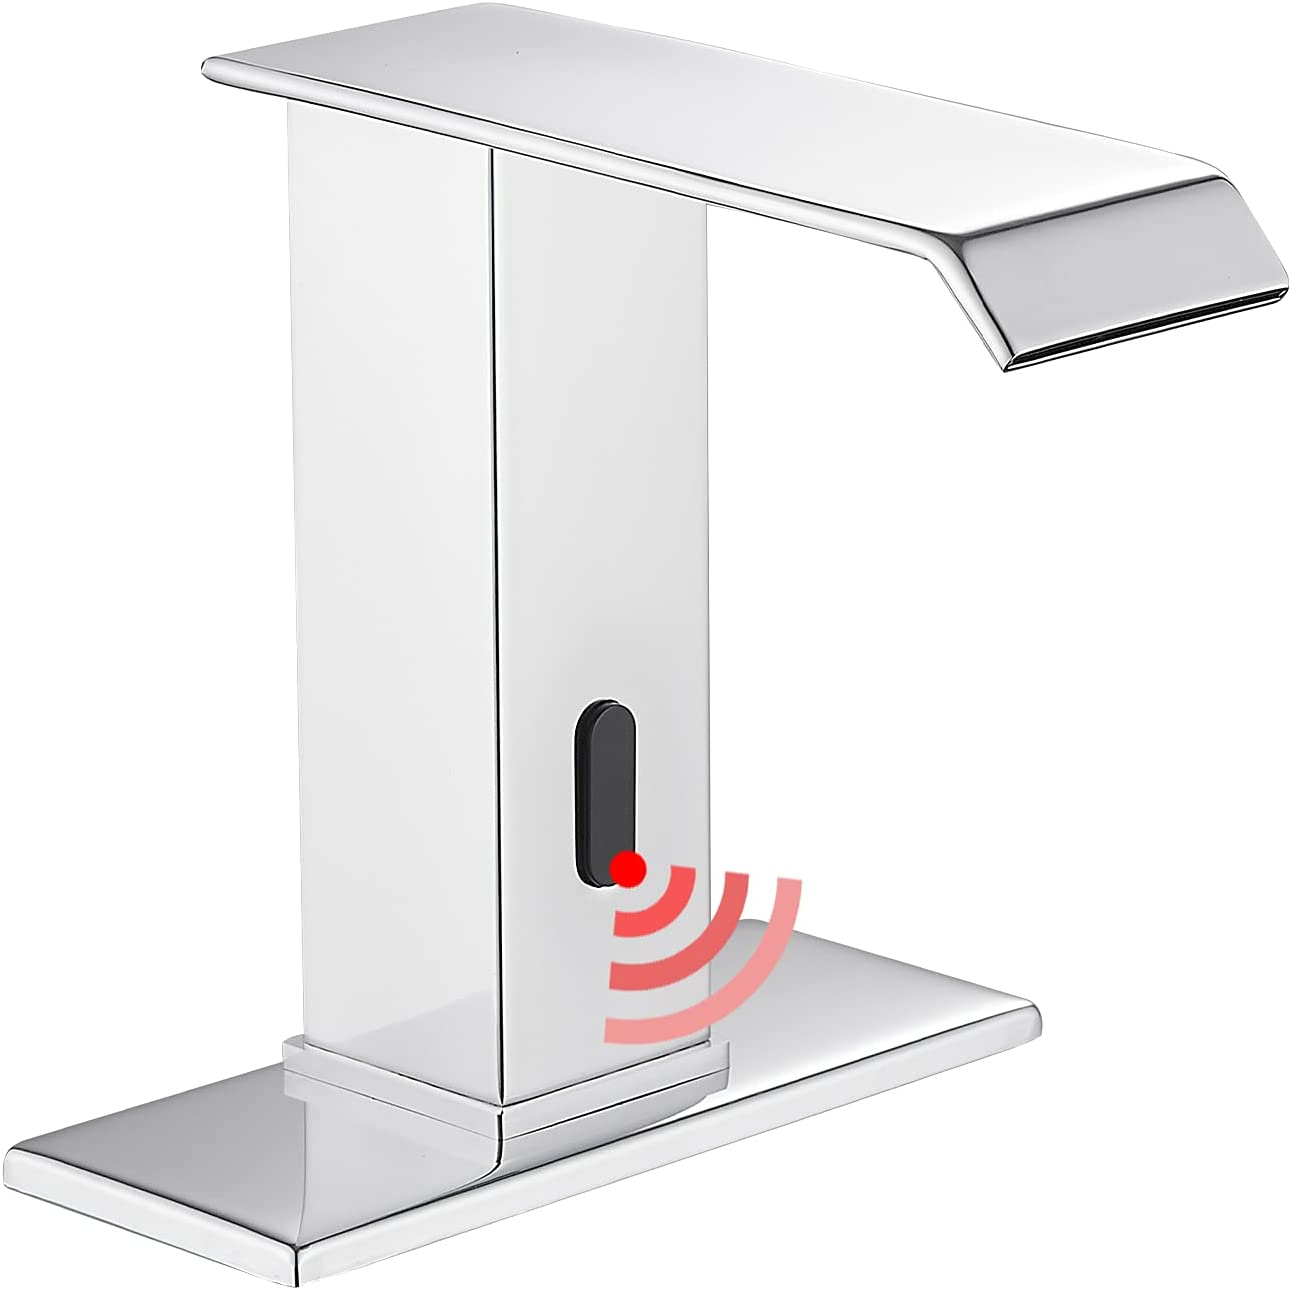 Automatic Sensor Chrome Touchless Bathroom Sink Faucet with Hole Cover Plate Vanity Faucets Hands Free Waterfall Bathroom Water Tap with Control Box and Temperature Mixer by GGStudy: Home Improvement